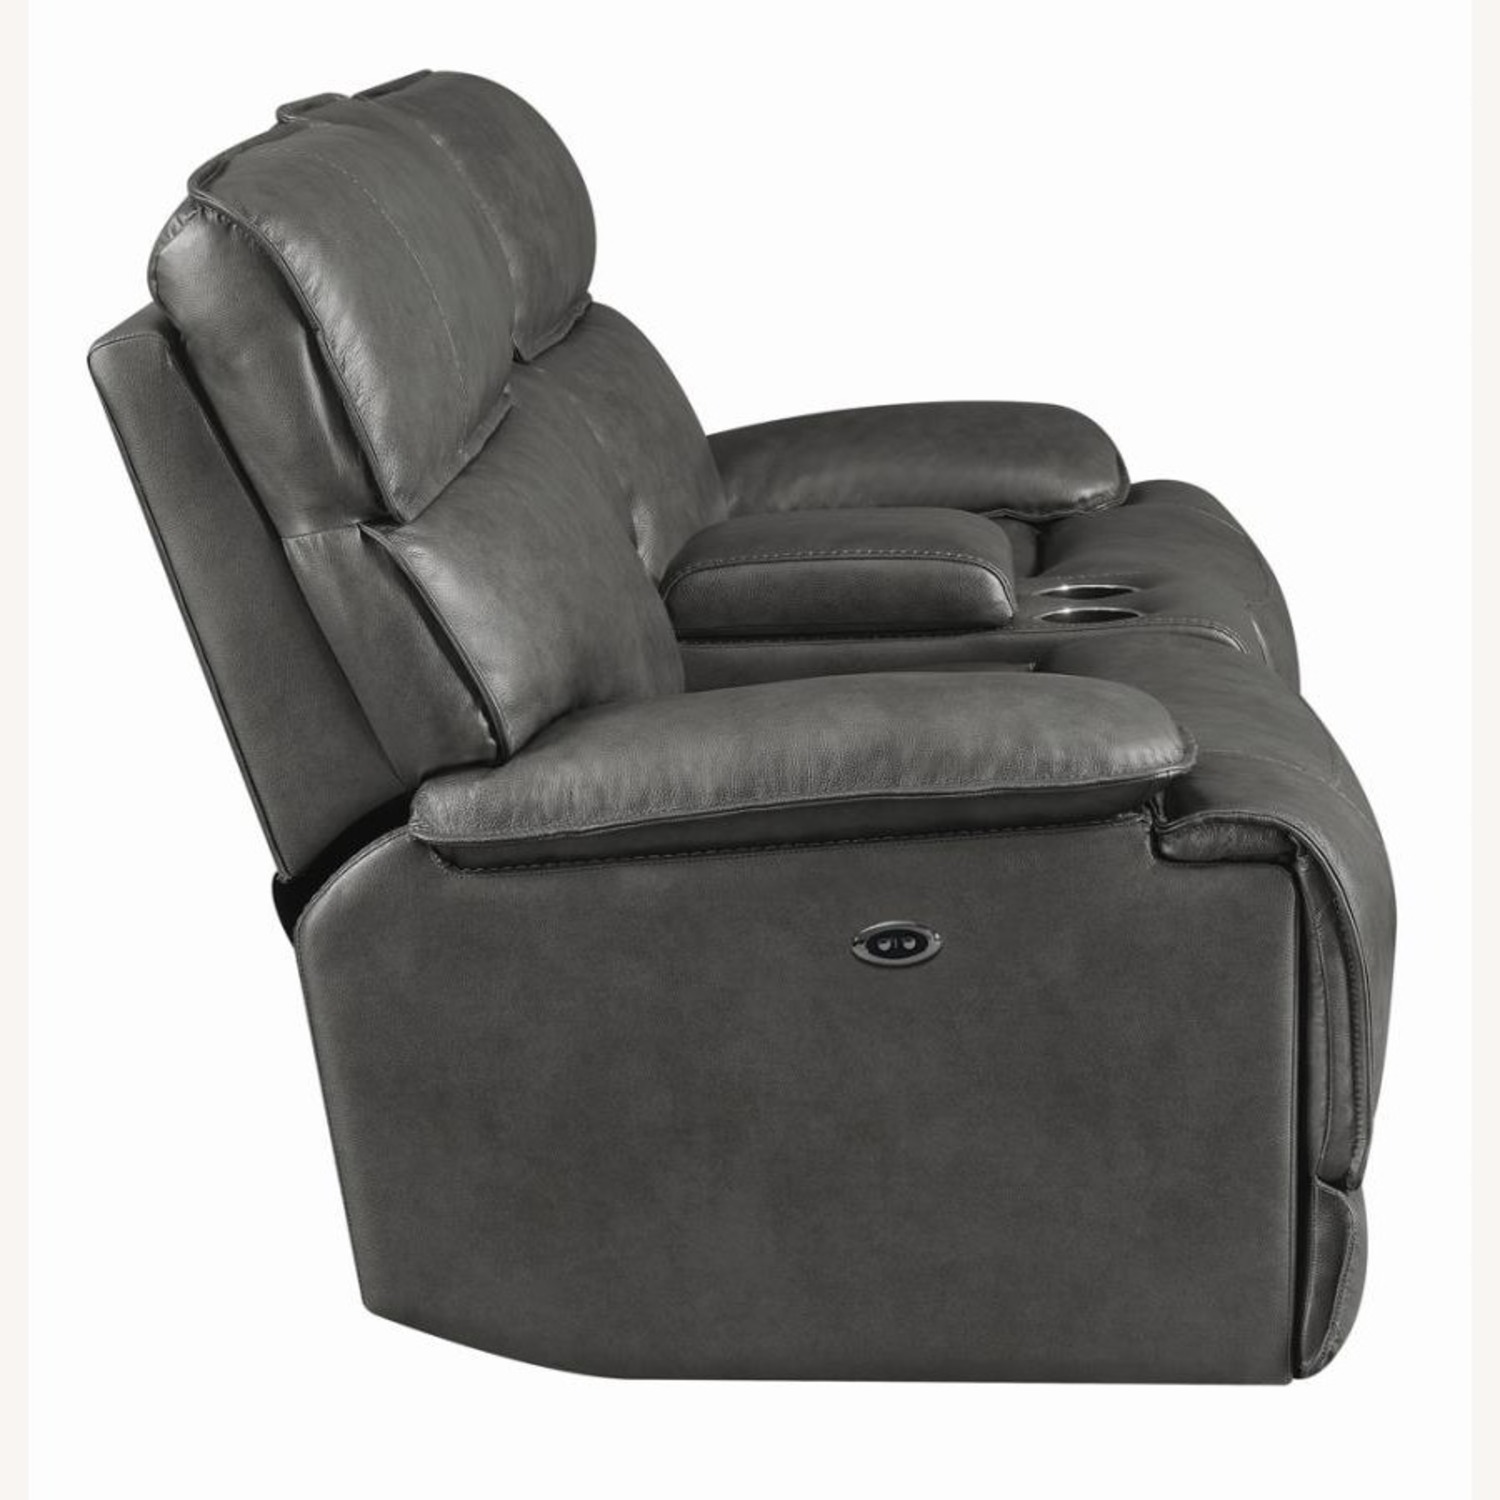 Power Recline Loveseat In Charcoal Leather - image-3